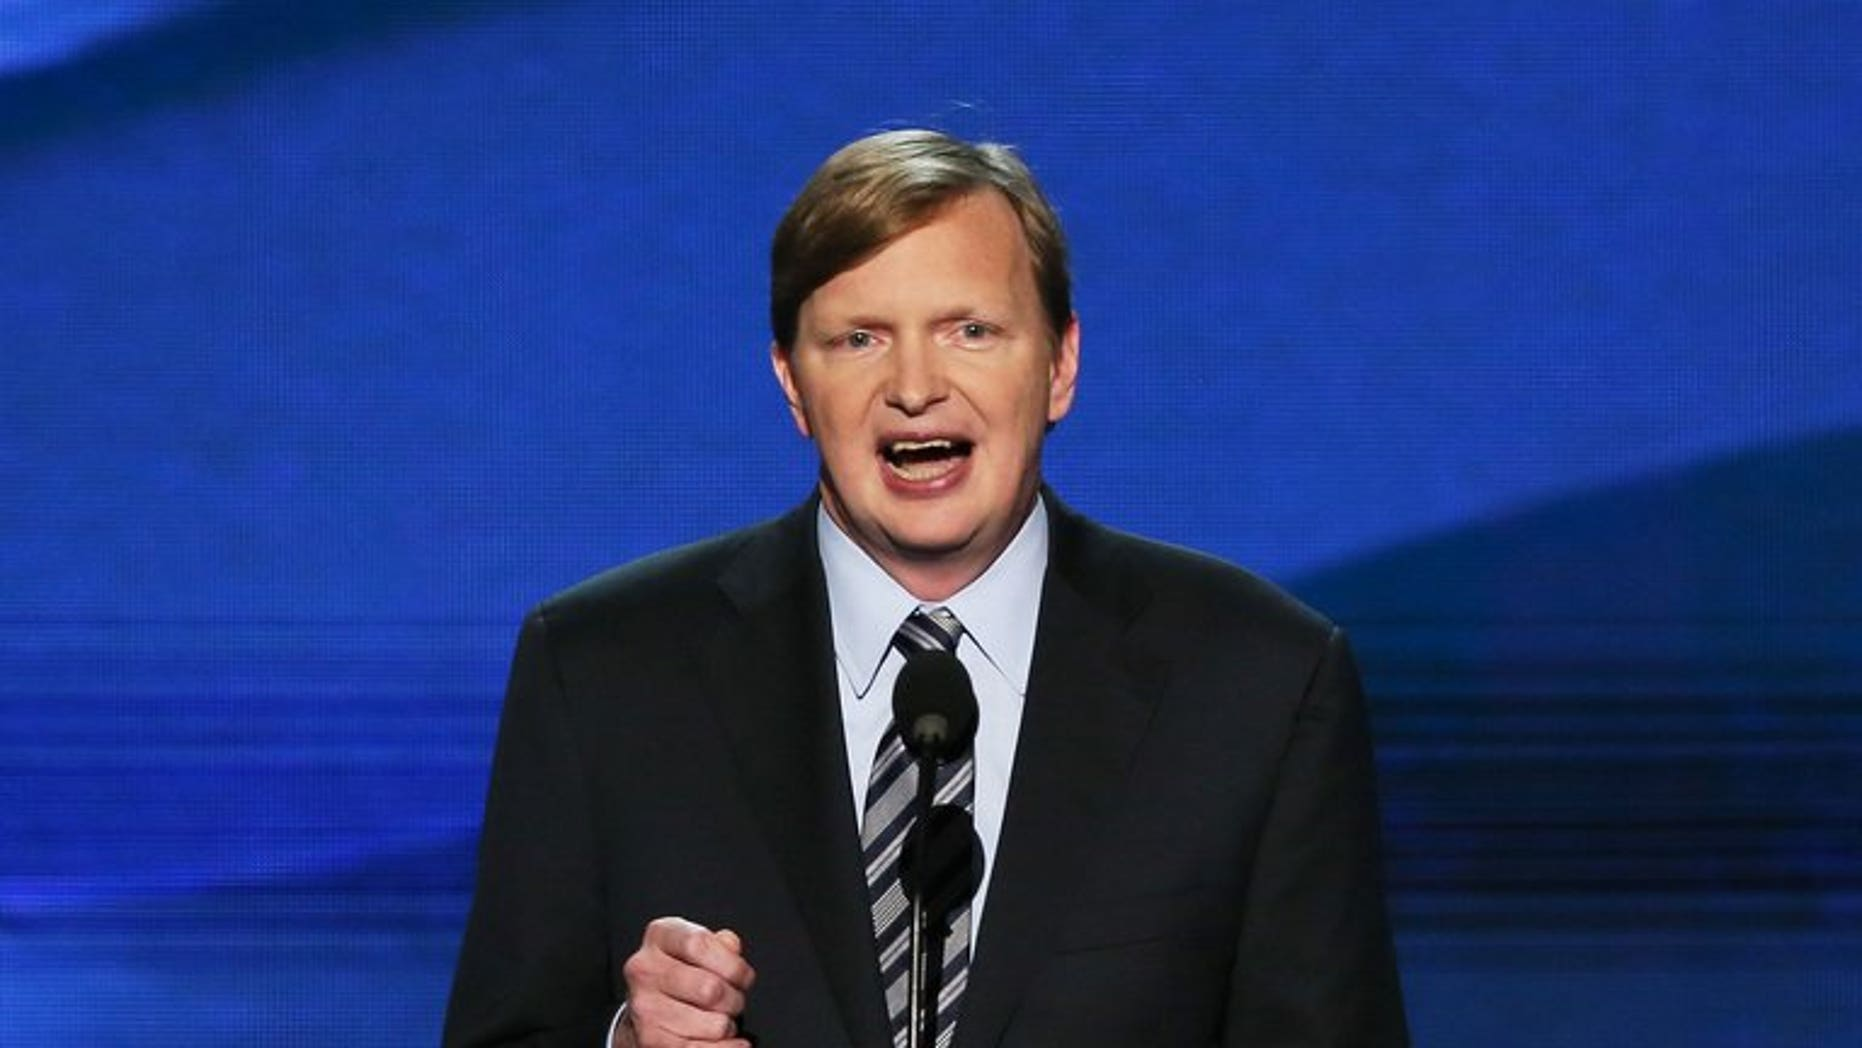 Britain's Prime Minister David Cameron has hired US President Barack Obama's campaign manager Jim Messina, pictured September 6, 2012, to advise his Conservative party on its strategy for the 2015 general election, it emerged.